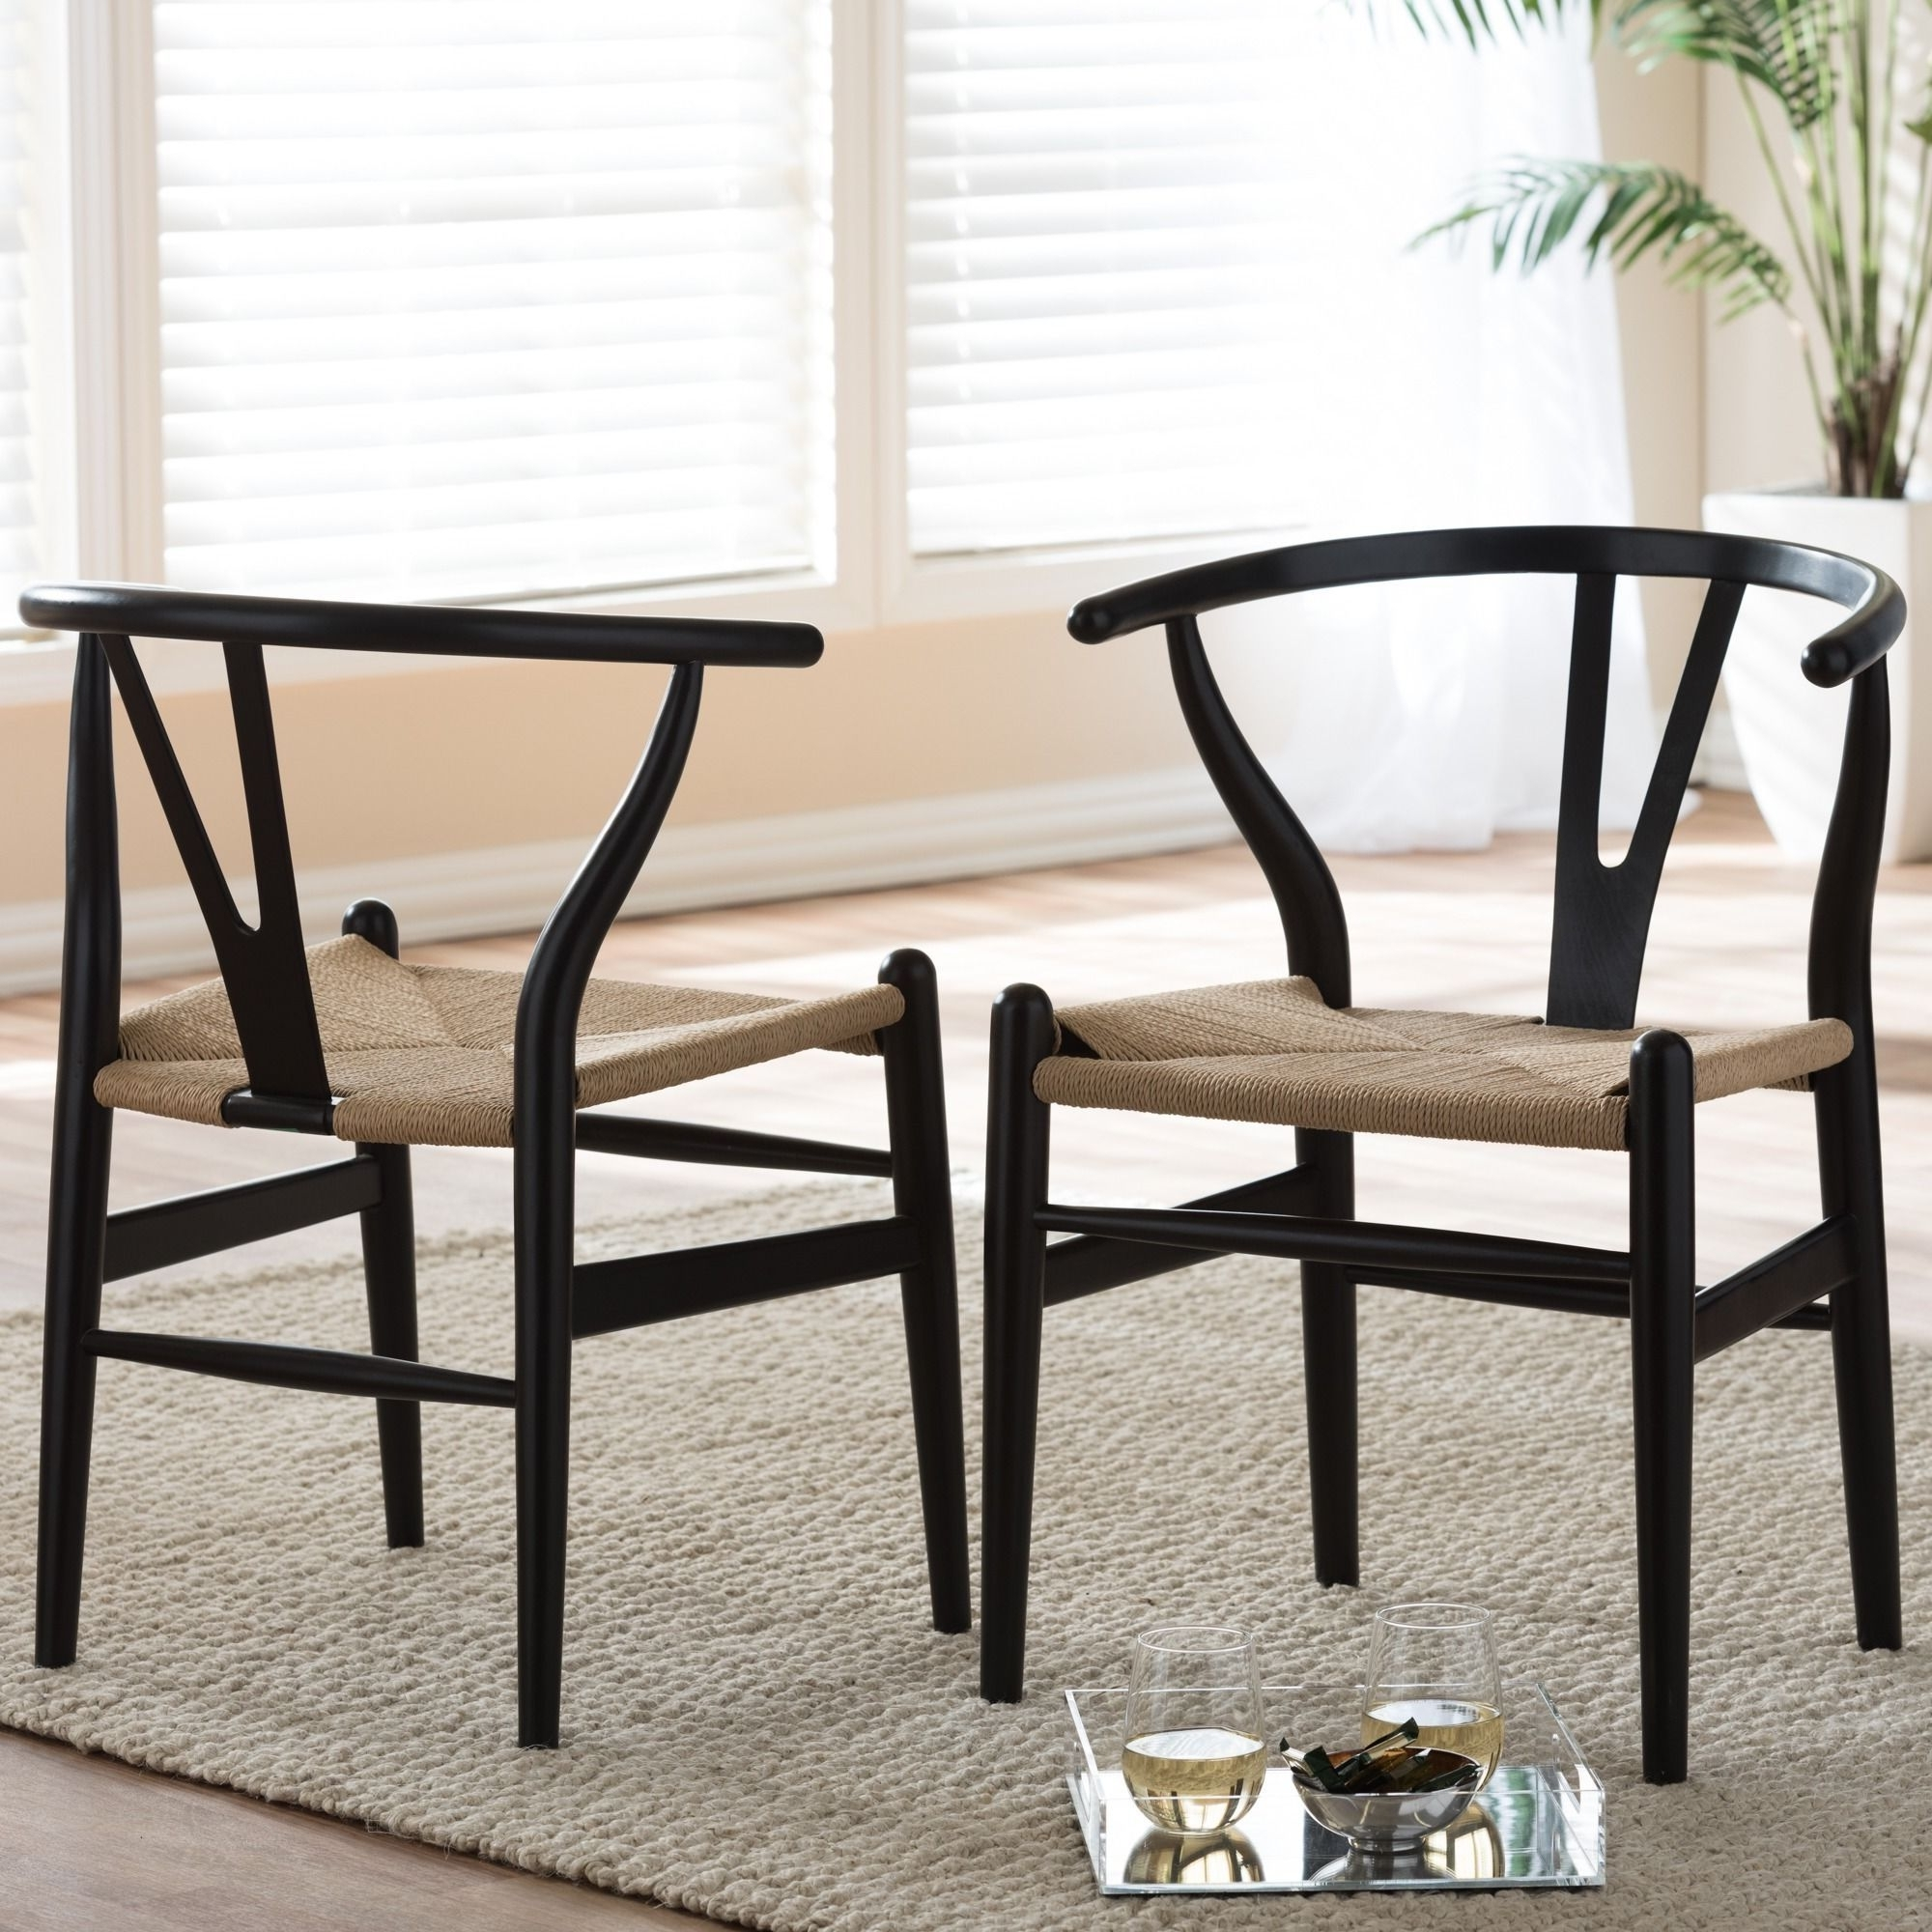 Current Caira Black 7 Piece Dining Sets With Upholstered Side Chairs For Baxton Studio Wishbone Modern Black Wood Dining Chair With Light (Gallery 25 of 25)